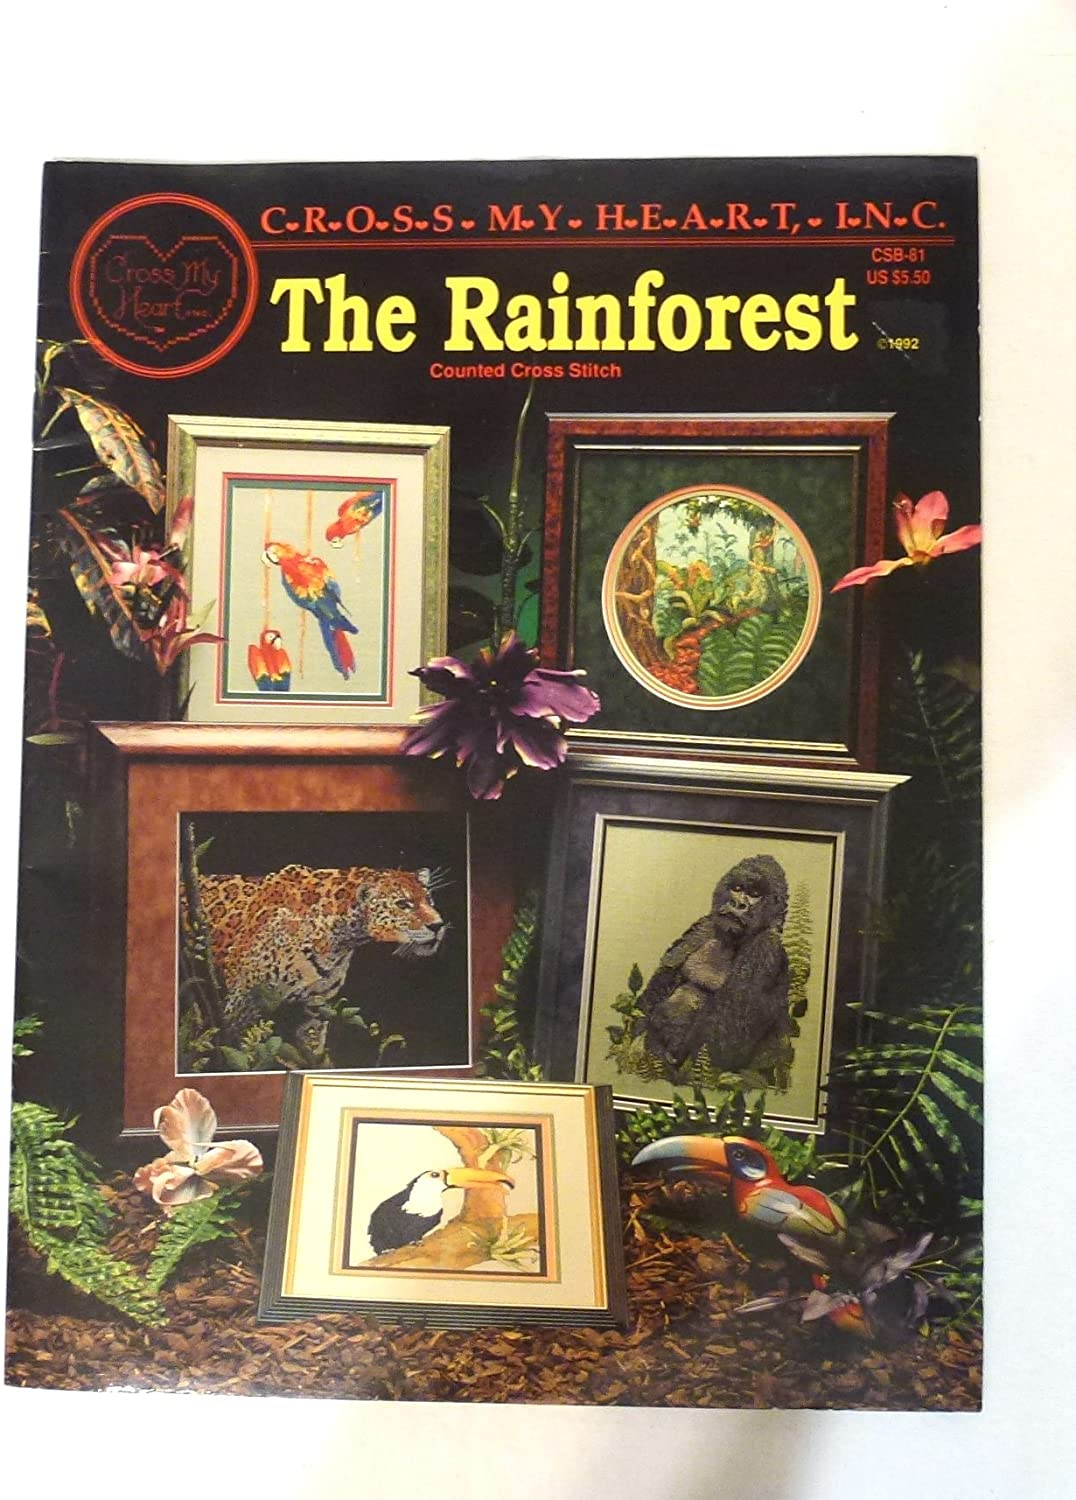 Cross My Heart The Rainforest Counted Cross Stitch Pattern Booklet - CSB81